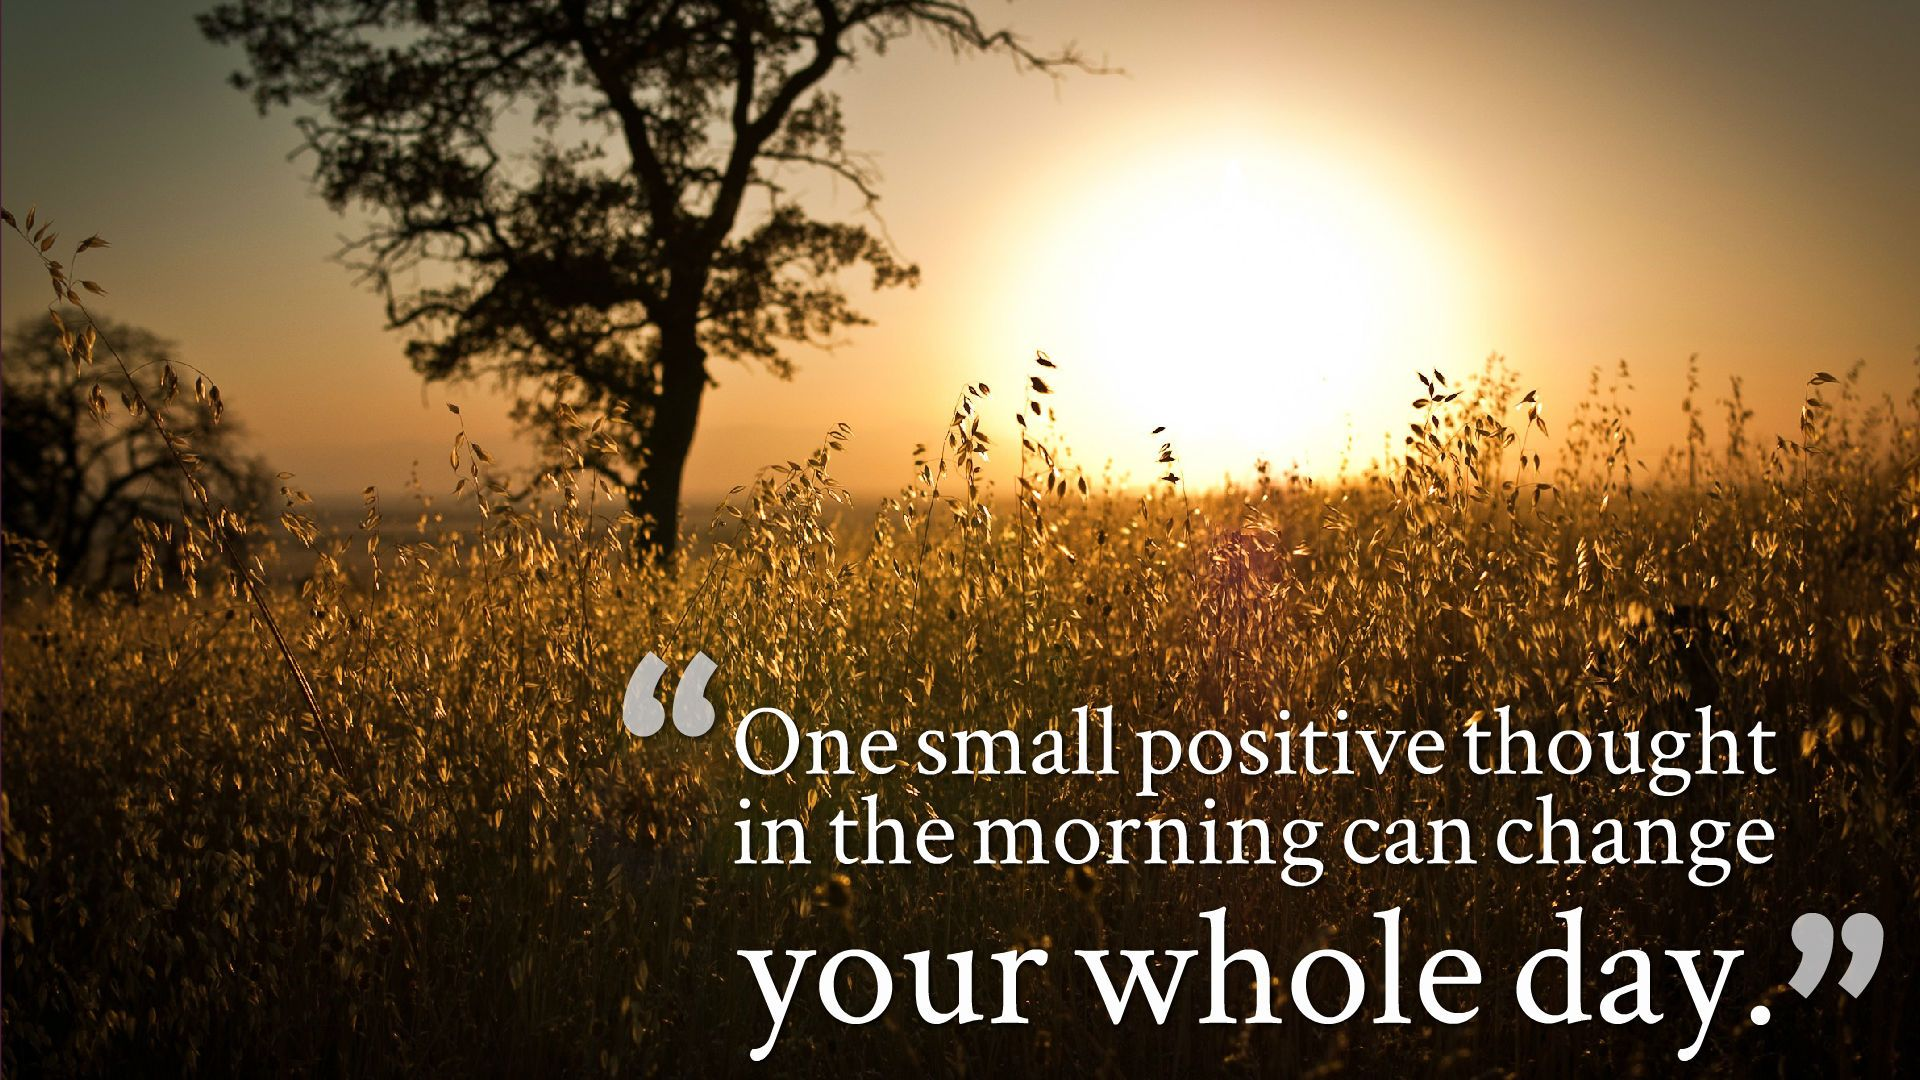 35 Best Inspirational Morning Quotes To Make Your Day Good Morning